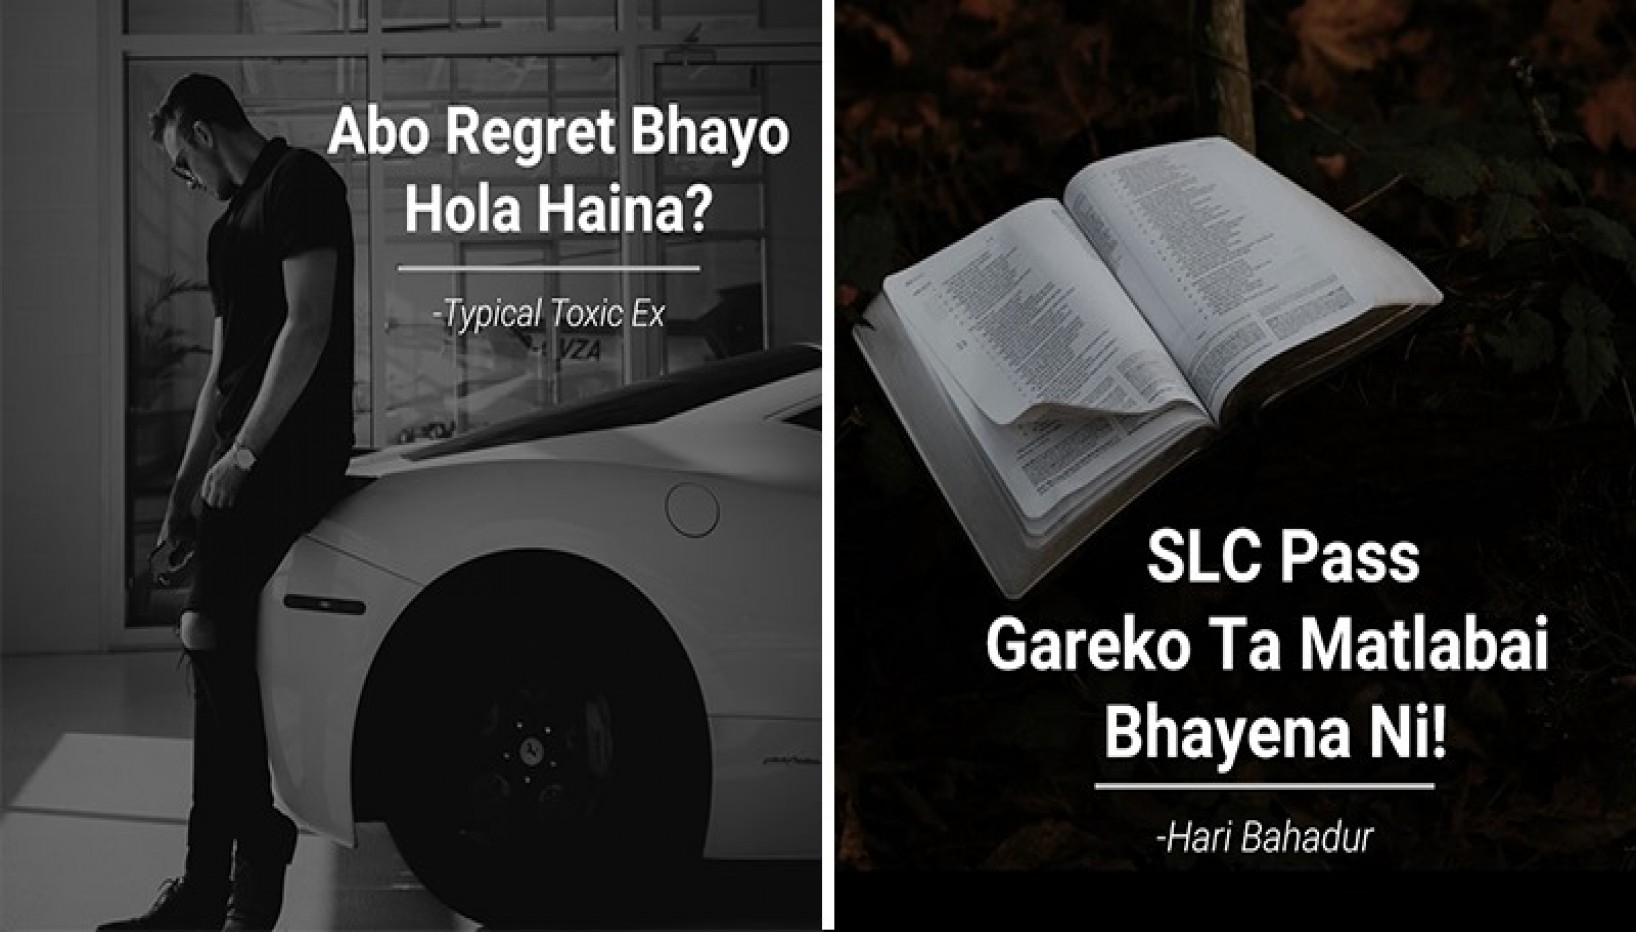 We Turned Popular Nepali Demotivational Comments Into Motivational Quotes And They Work (Kind of)